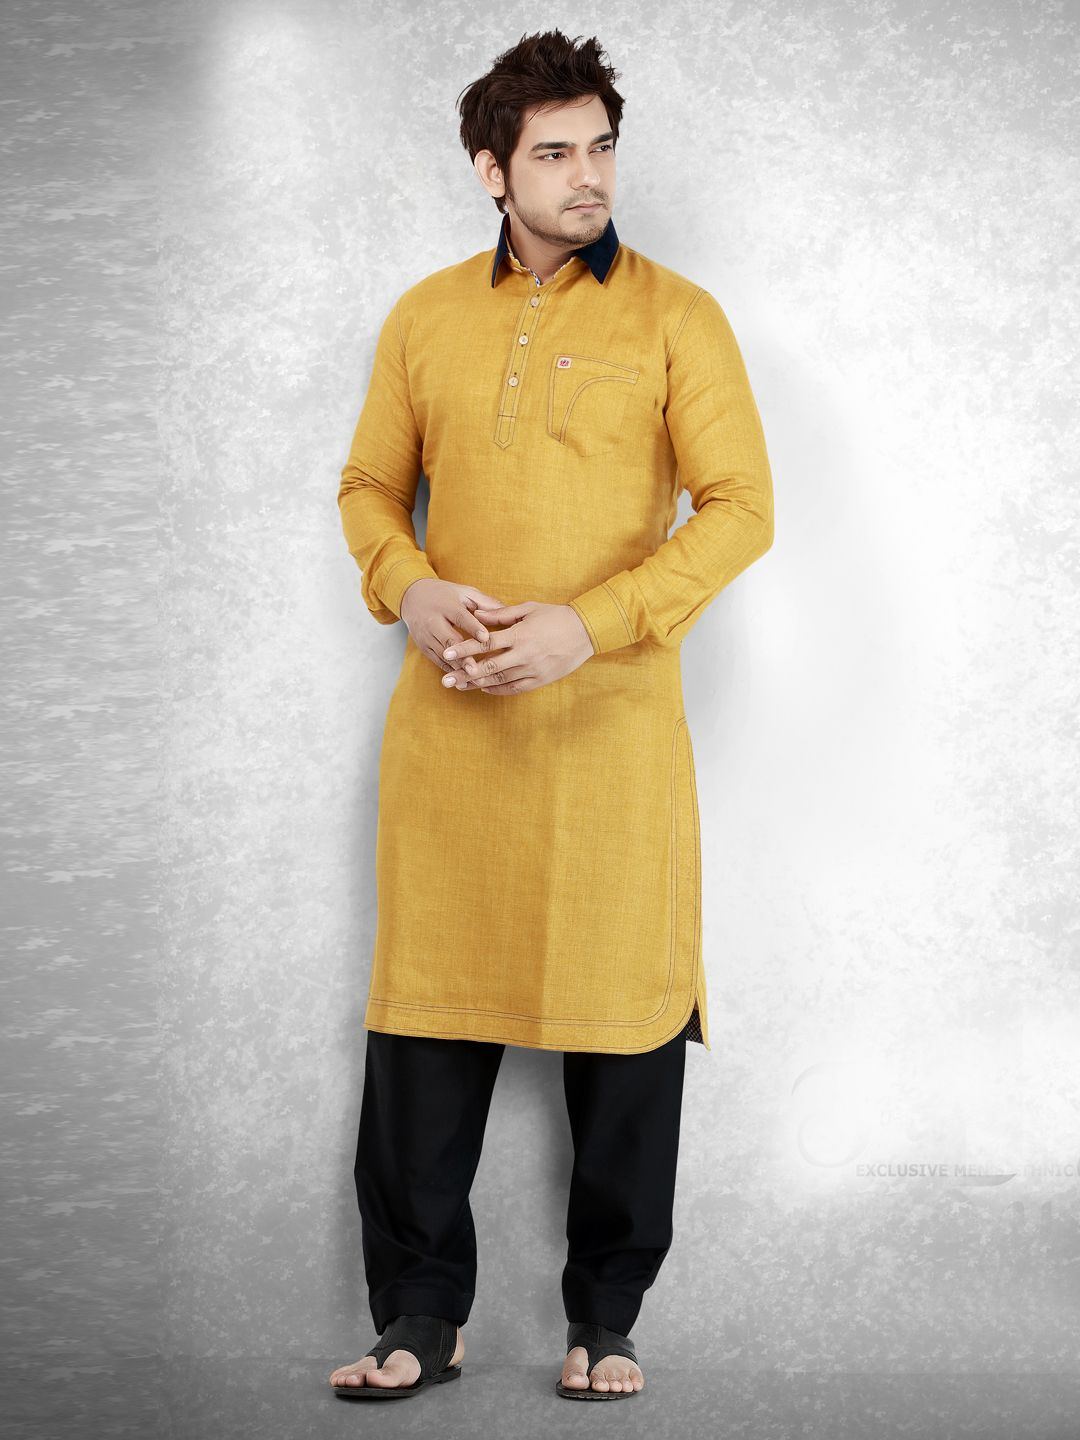 8b5af93265 Cotton Plain Yellow Festive Men Pathani Suit | Churidar | Kurta men ...